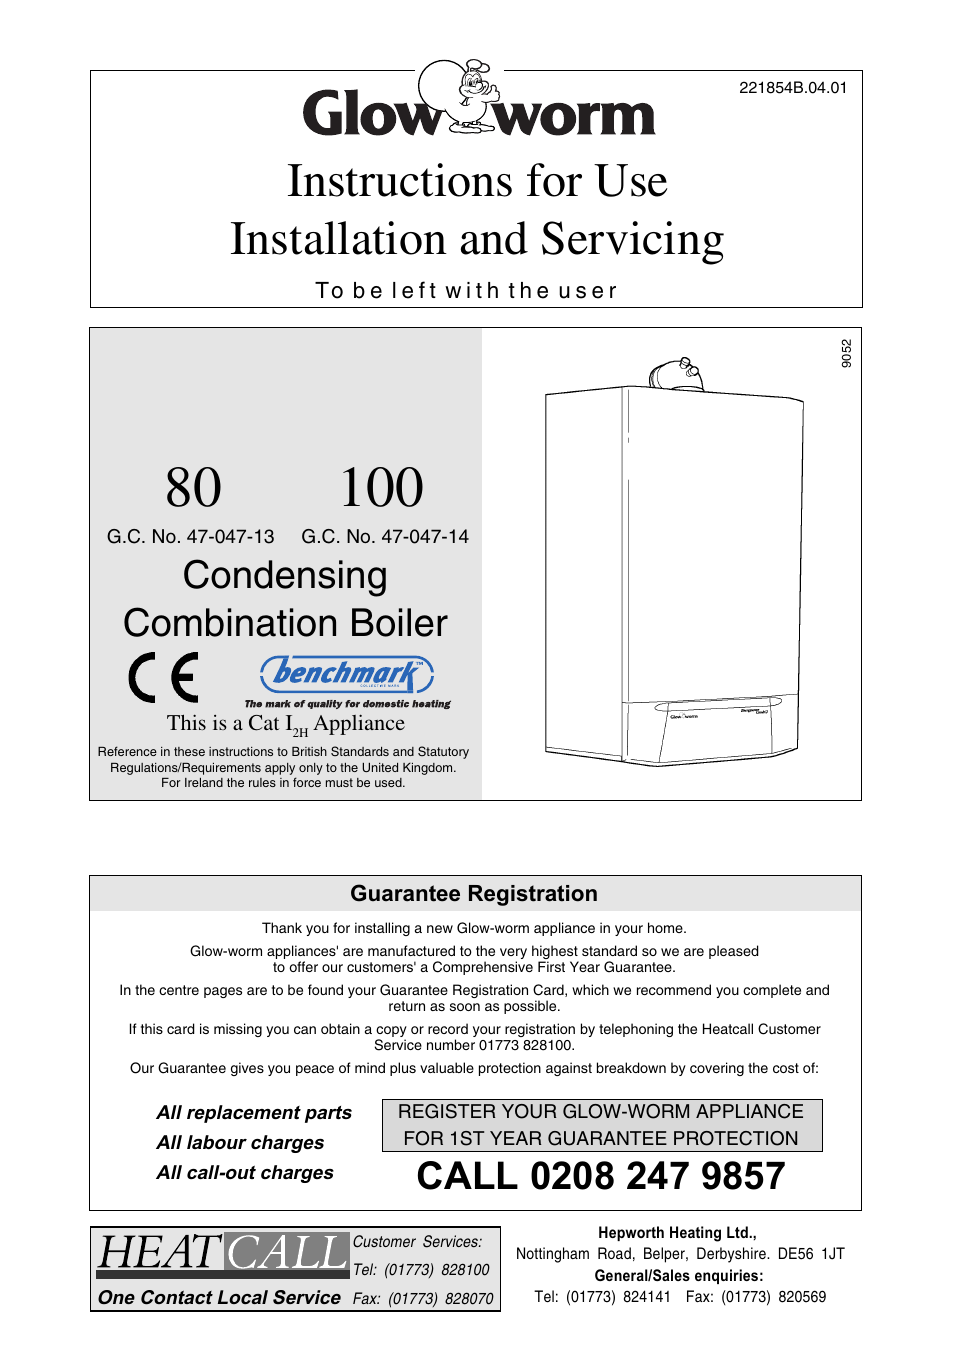 Dorable Glow Worm Boiler Instructions Ensign - Electrical and Wiring ...